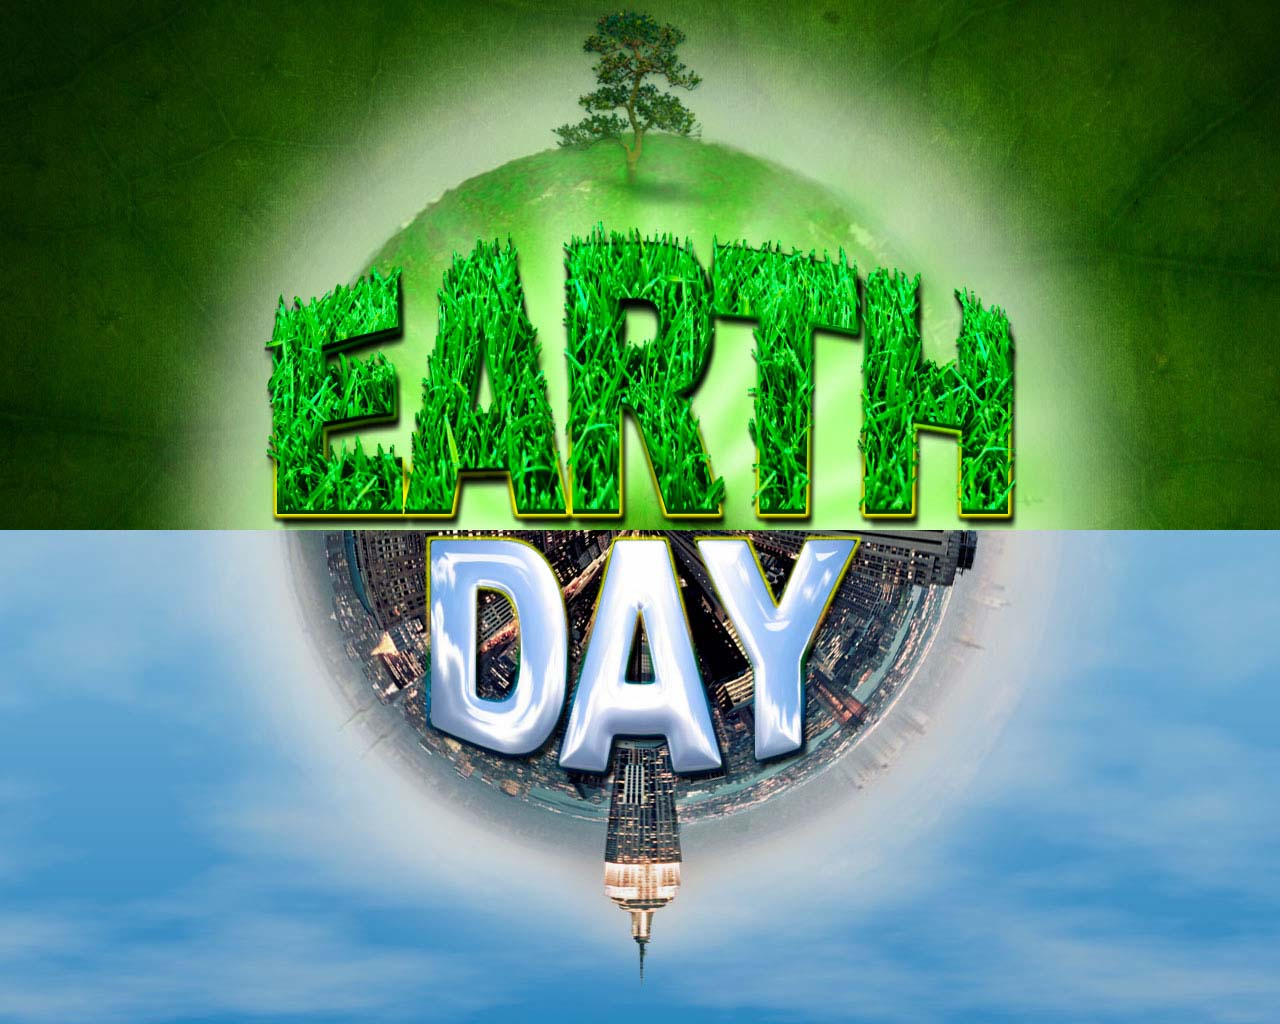 Earth day 2012 powerpoint background free download ppt bird i earth day 2012 powerpoint background free download 2 toneelgroepblik Images